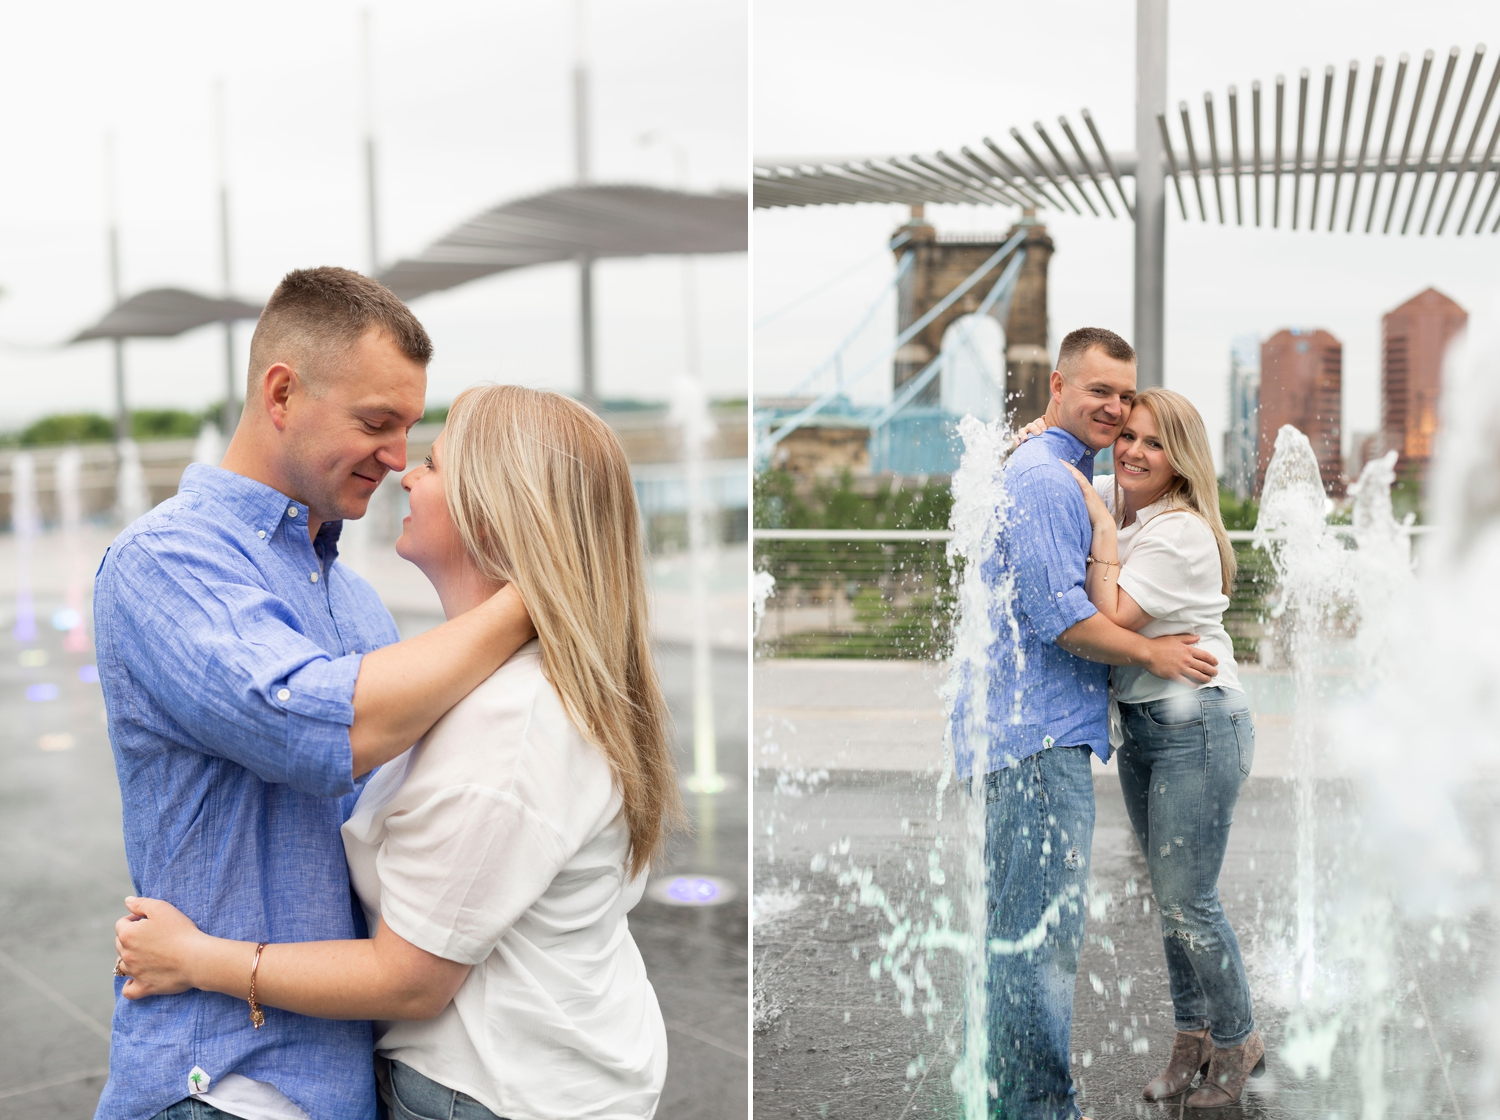 splash pad engagement photos, roebling bridge, engagement session, downtown Cincinnati, Cincinnati engagement session, engagement photos, spring engagement photos, roebling bridge photos, downtown Cincinnati engagement photos, Cincinnati engagement photographer, ohio engagement photos